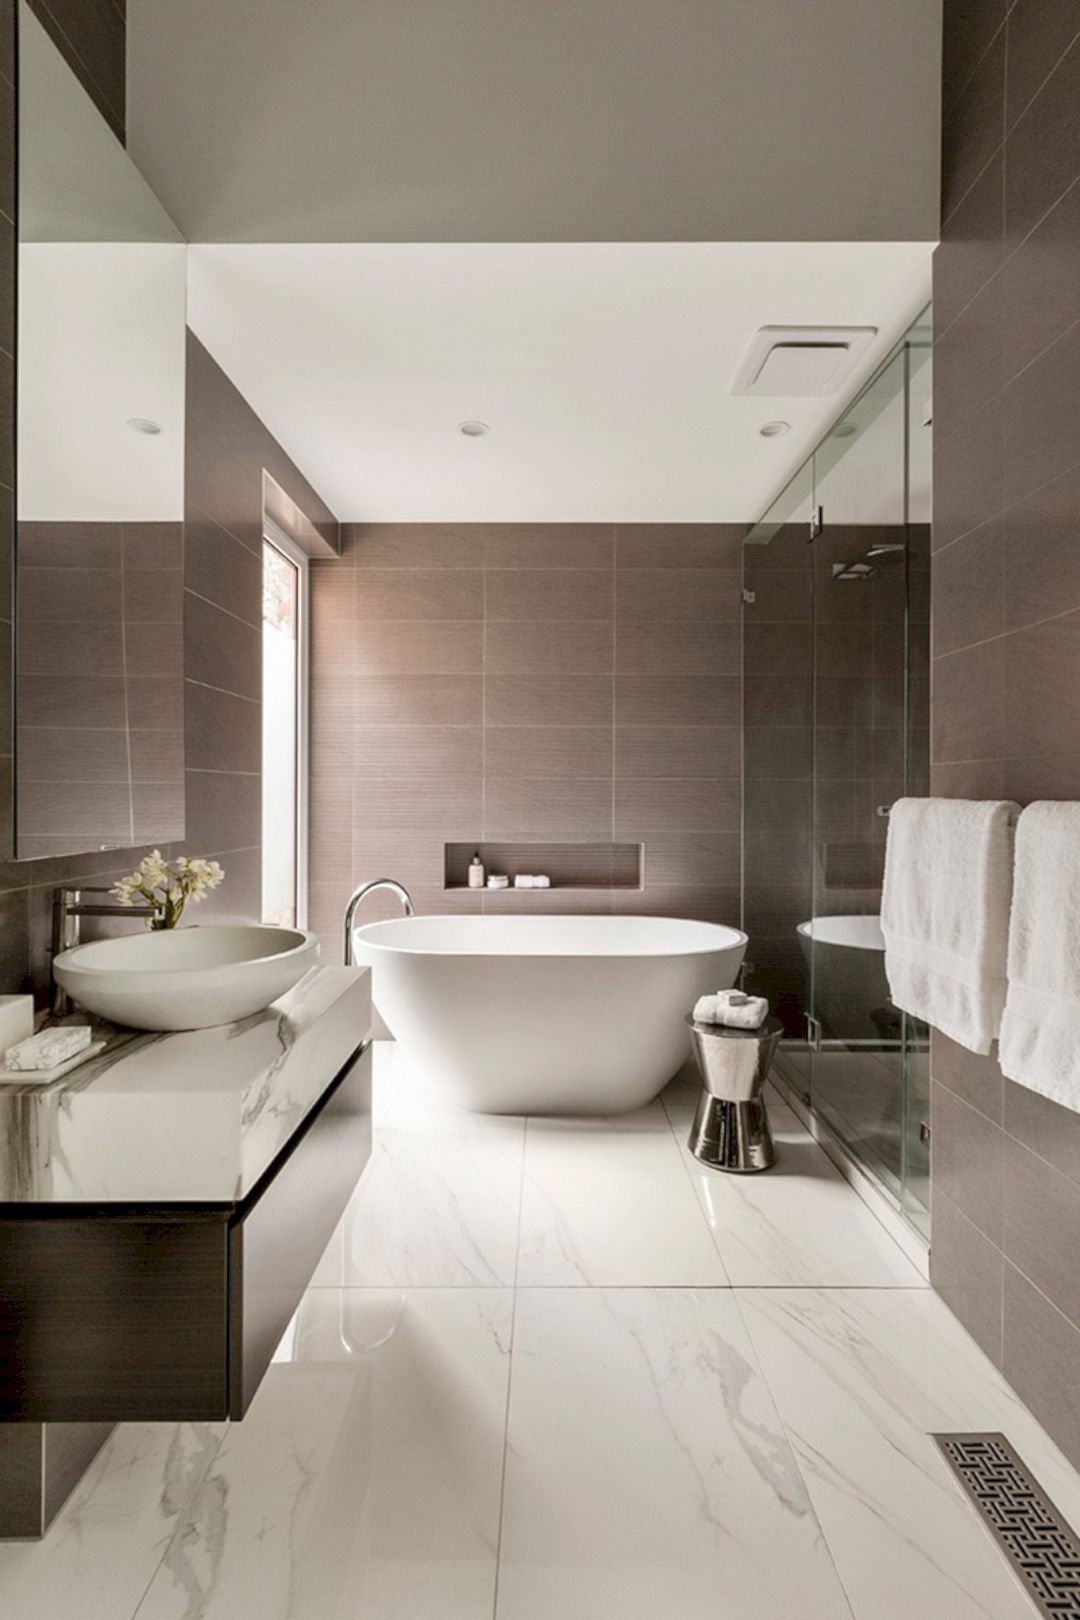 Stylish Modern Bathroom: 128 Best Designs Roundup   Pinterest ... on designs for plaster walls, designs for very small house, designs for small basements, designs for bathroom mirrors, designs for small barns, designs for bedrooms, designs for small offices, designs for short nails, designs for small restaurants, designs for bathroom cabinets, designs for small backyards, designs for wood burning, designs for cornhole boards, designs for fake nails, designs for small patios, designs for frameless shower enclosures, designs for small attics, designs for small entryways, designs for small rooms, designs for zentangles,